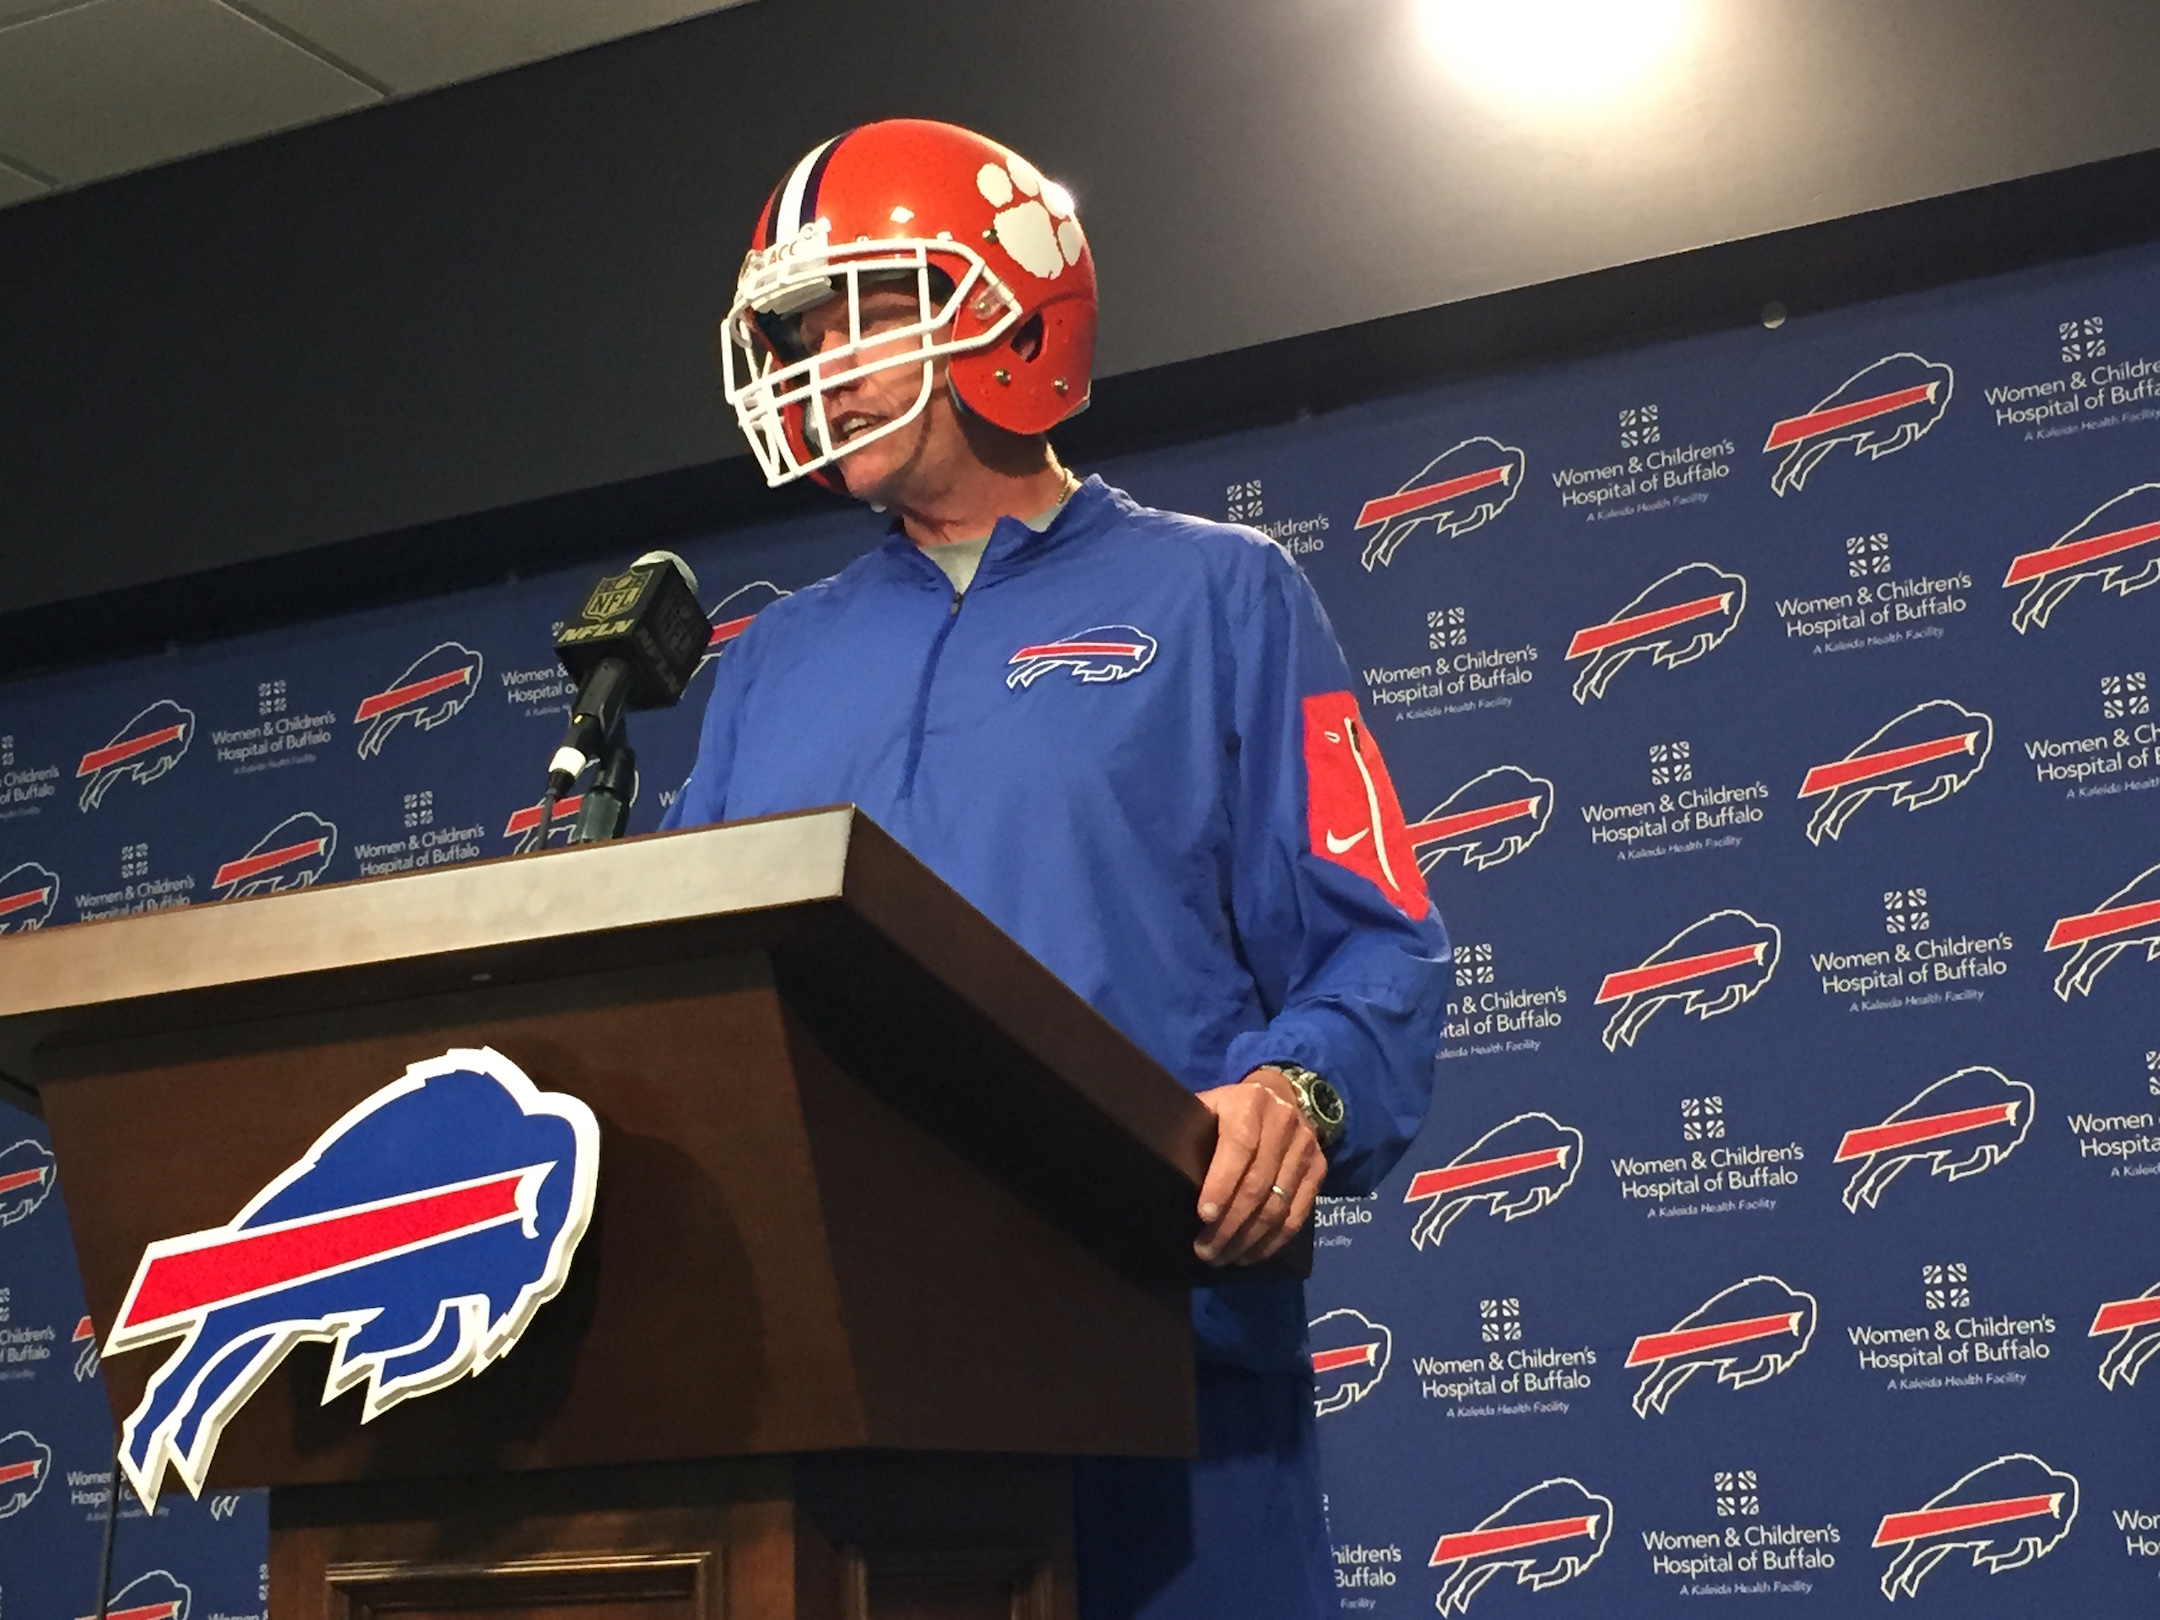 Rex Ryan is bringing his big personality to television, according to the New York Daily News. (News file photo)